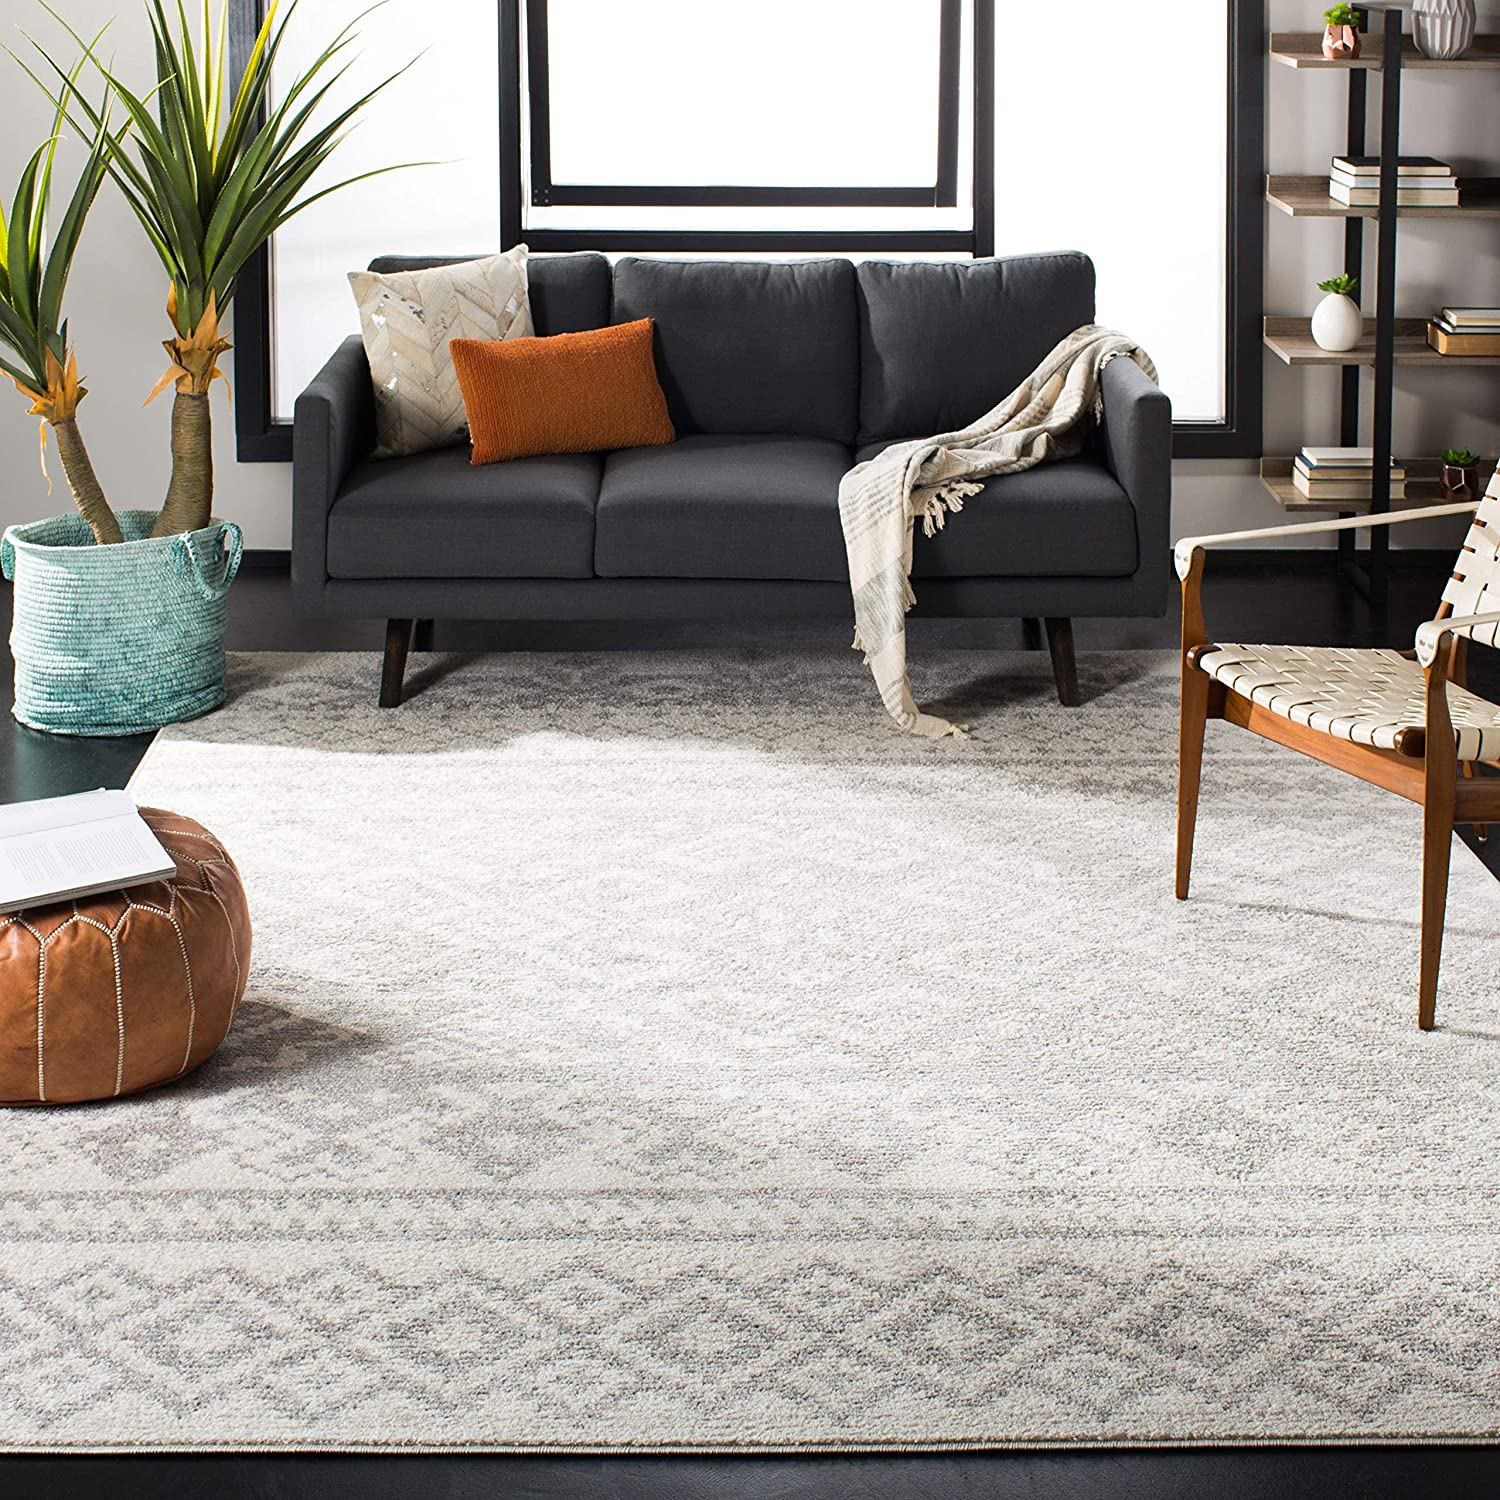 neutral gray and white patterned rug on living room floor